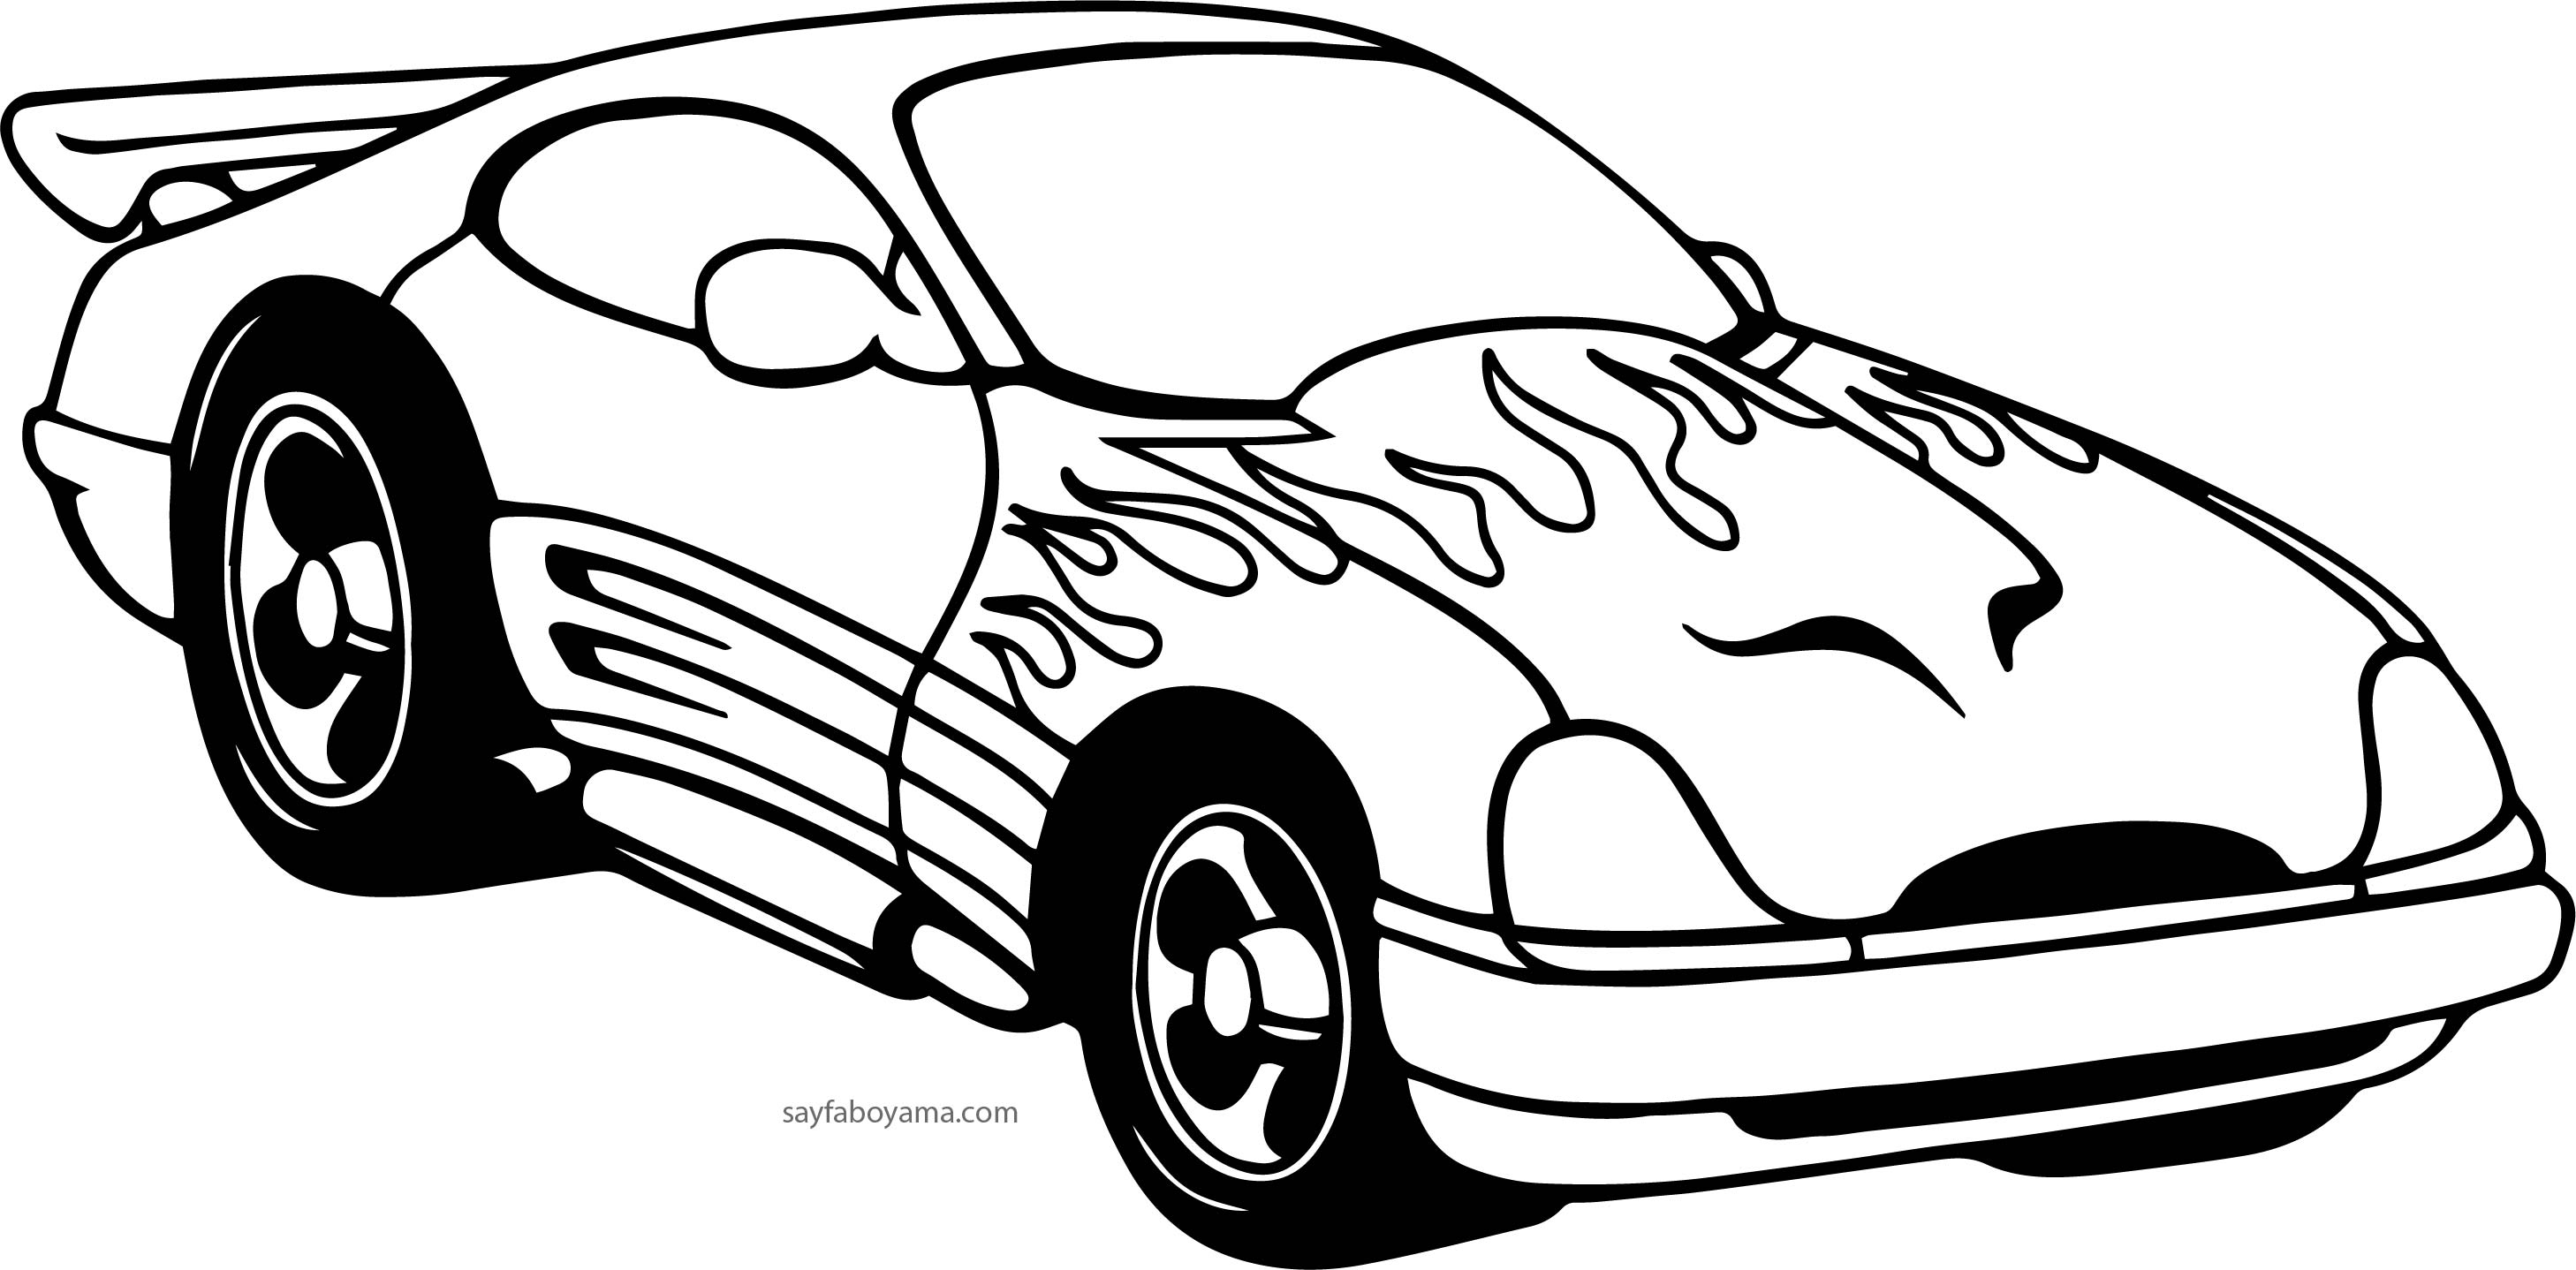 Ausmalbilder Autos Bugatti : 20 Bugatti Coloring Pages Images Free Coloring Pages